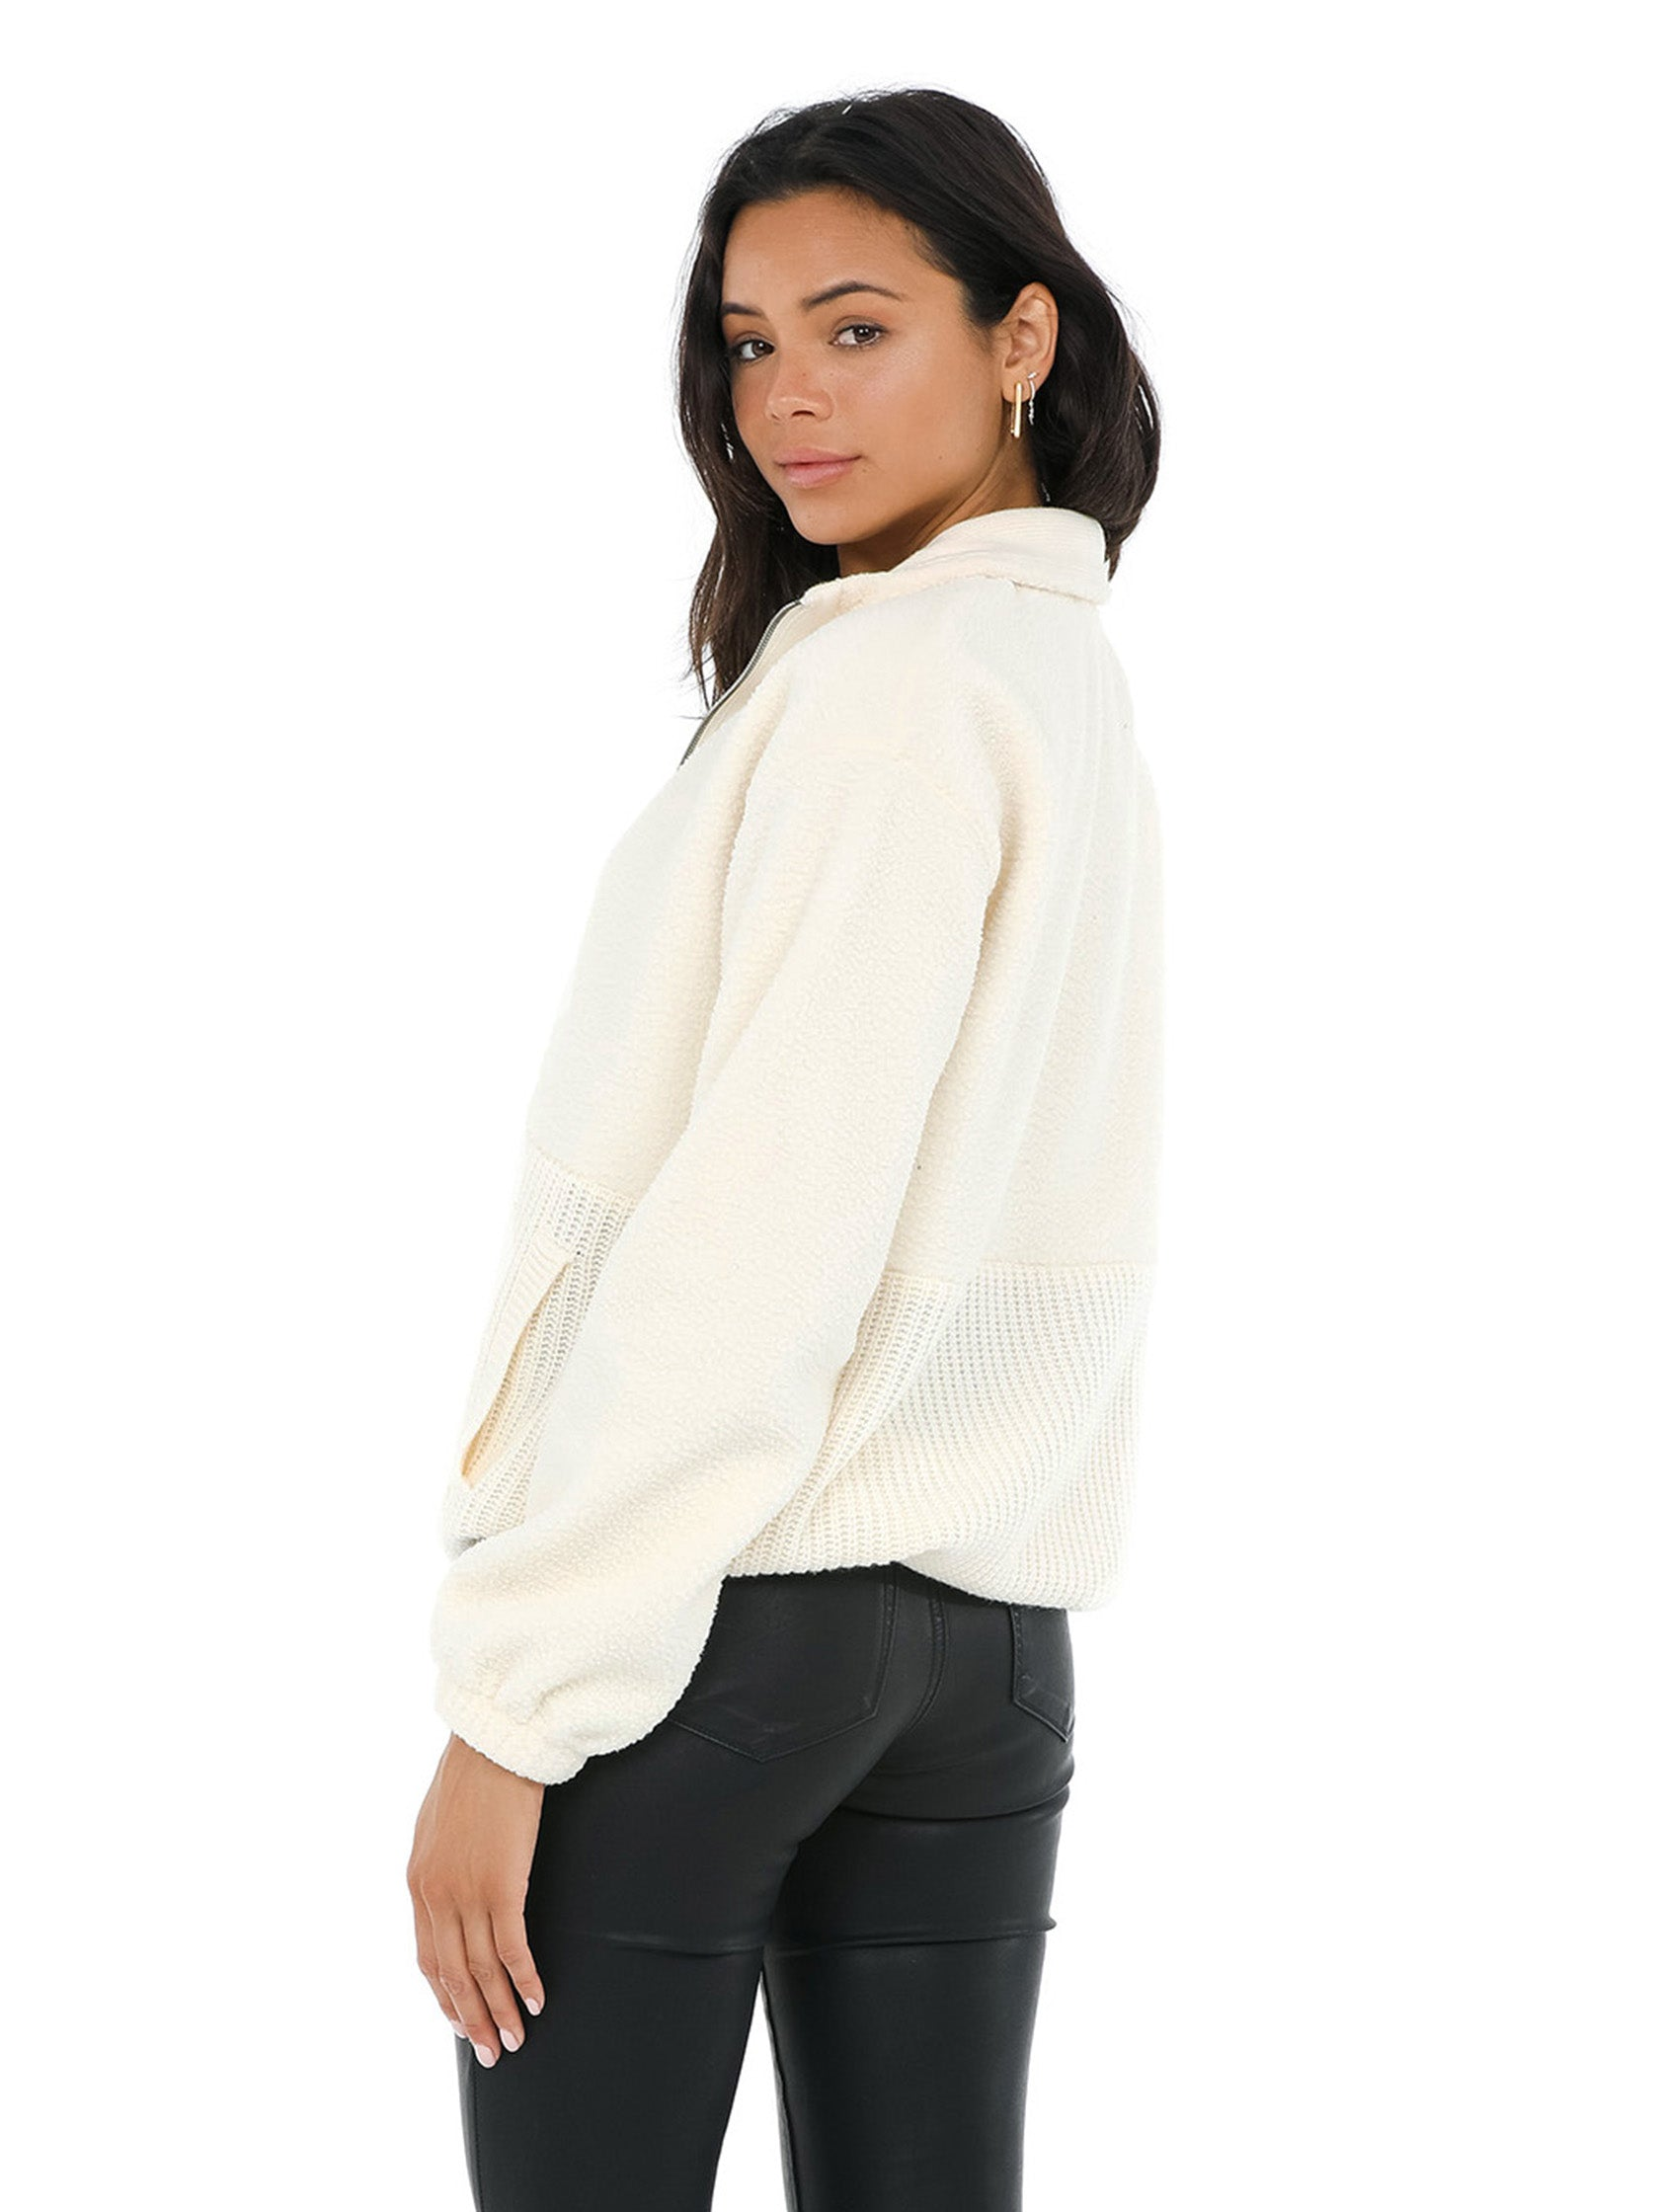 Women outfit in a sweater rental from Splendid called Boulder Half-zip Pullover